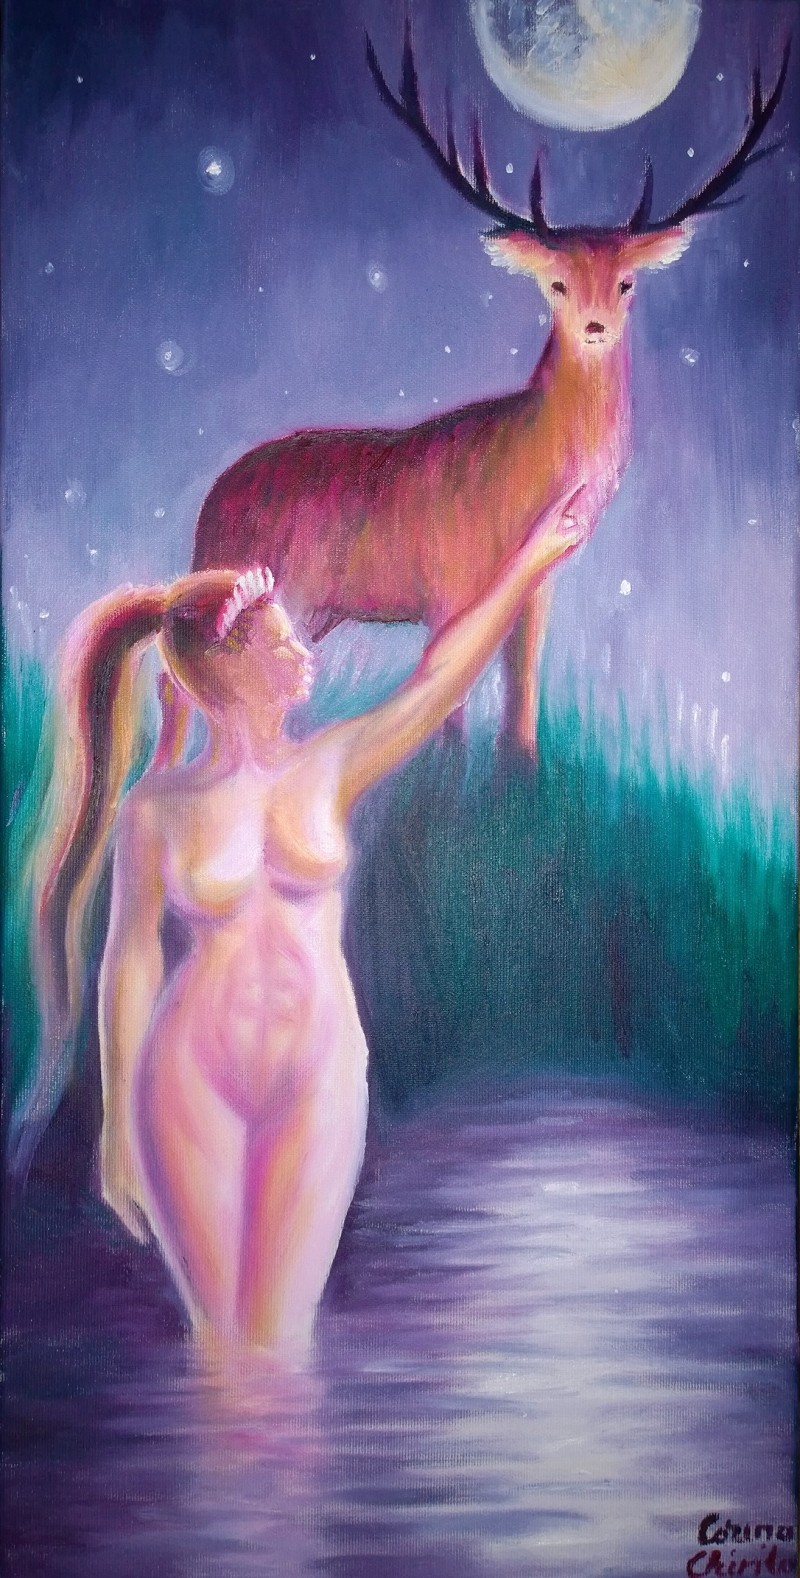 Artemis si Actaeon pictura ulei pe panza - Diana and the legend of Actaeon oil on canvas painting